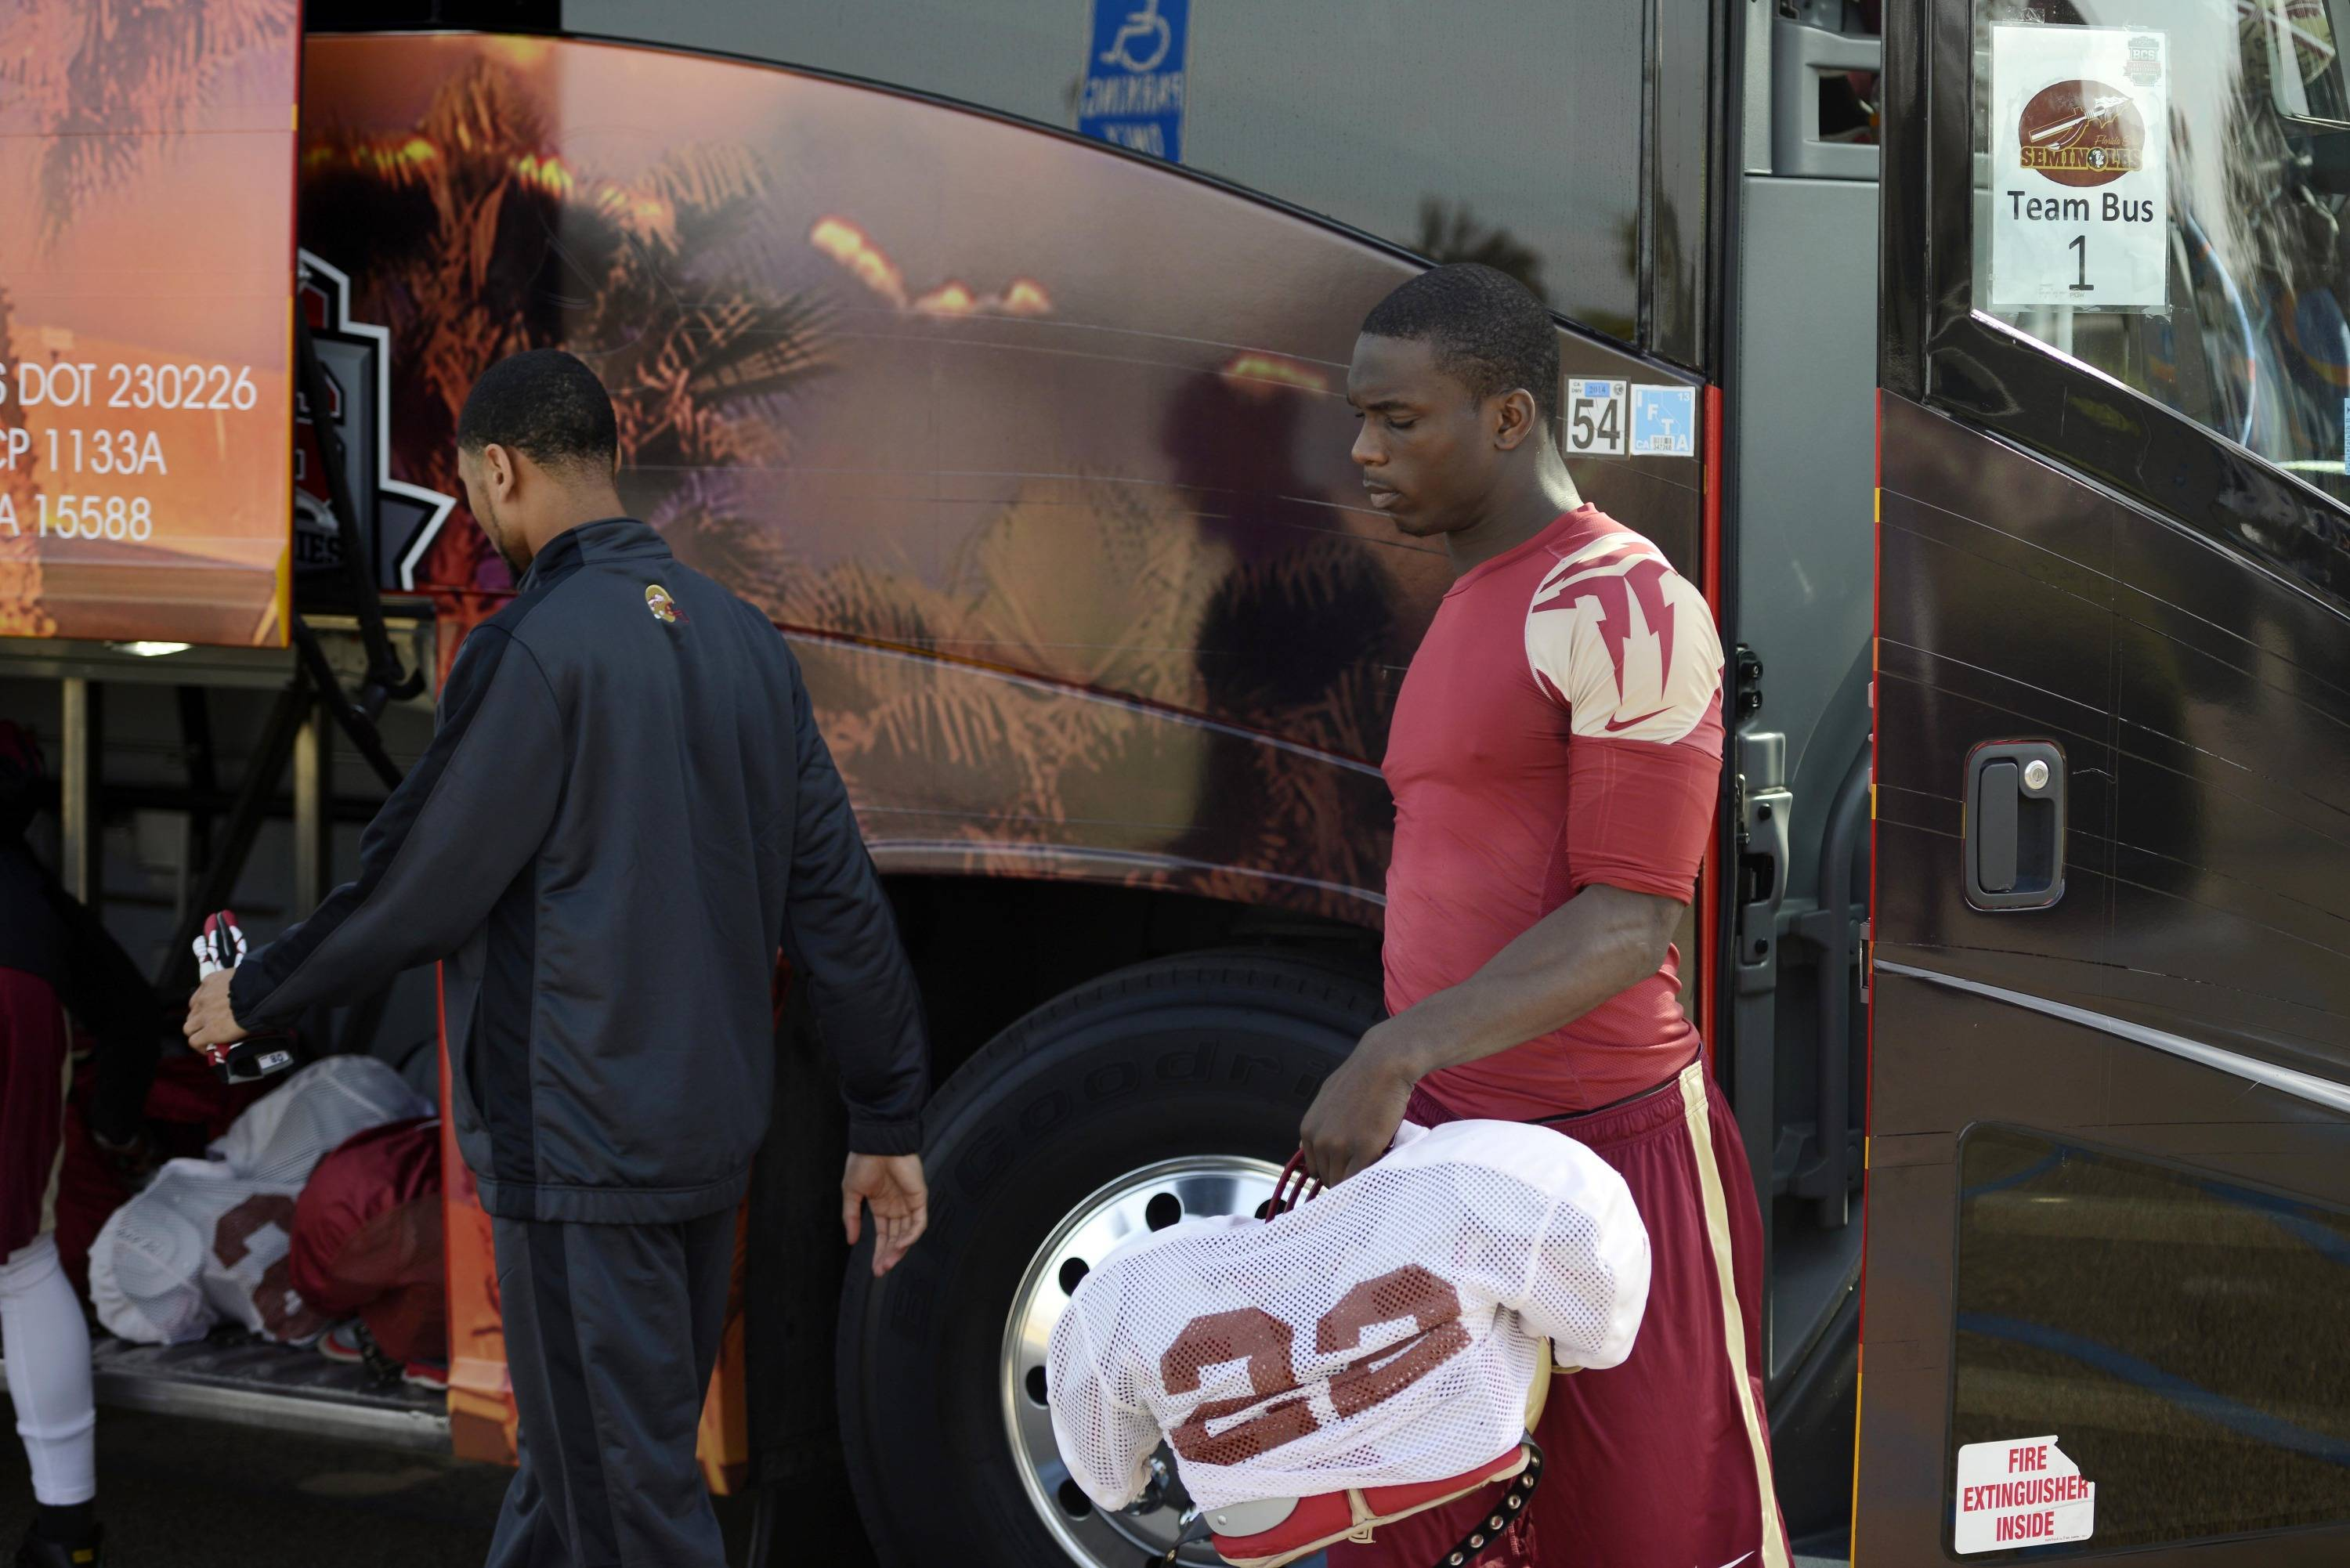 Jan 3, 2014; Orange, CA, USA; Florida State Seminoles linebacker Telvin Smith (22) exits the bus during practice for the BCS National Championship football game against the Auburn Tigers at Orange Coast College. Mandatory Credit: Kelvin Kuo-USA TODAY Sports